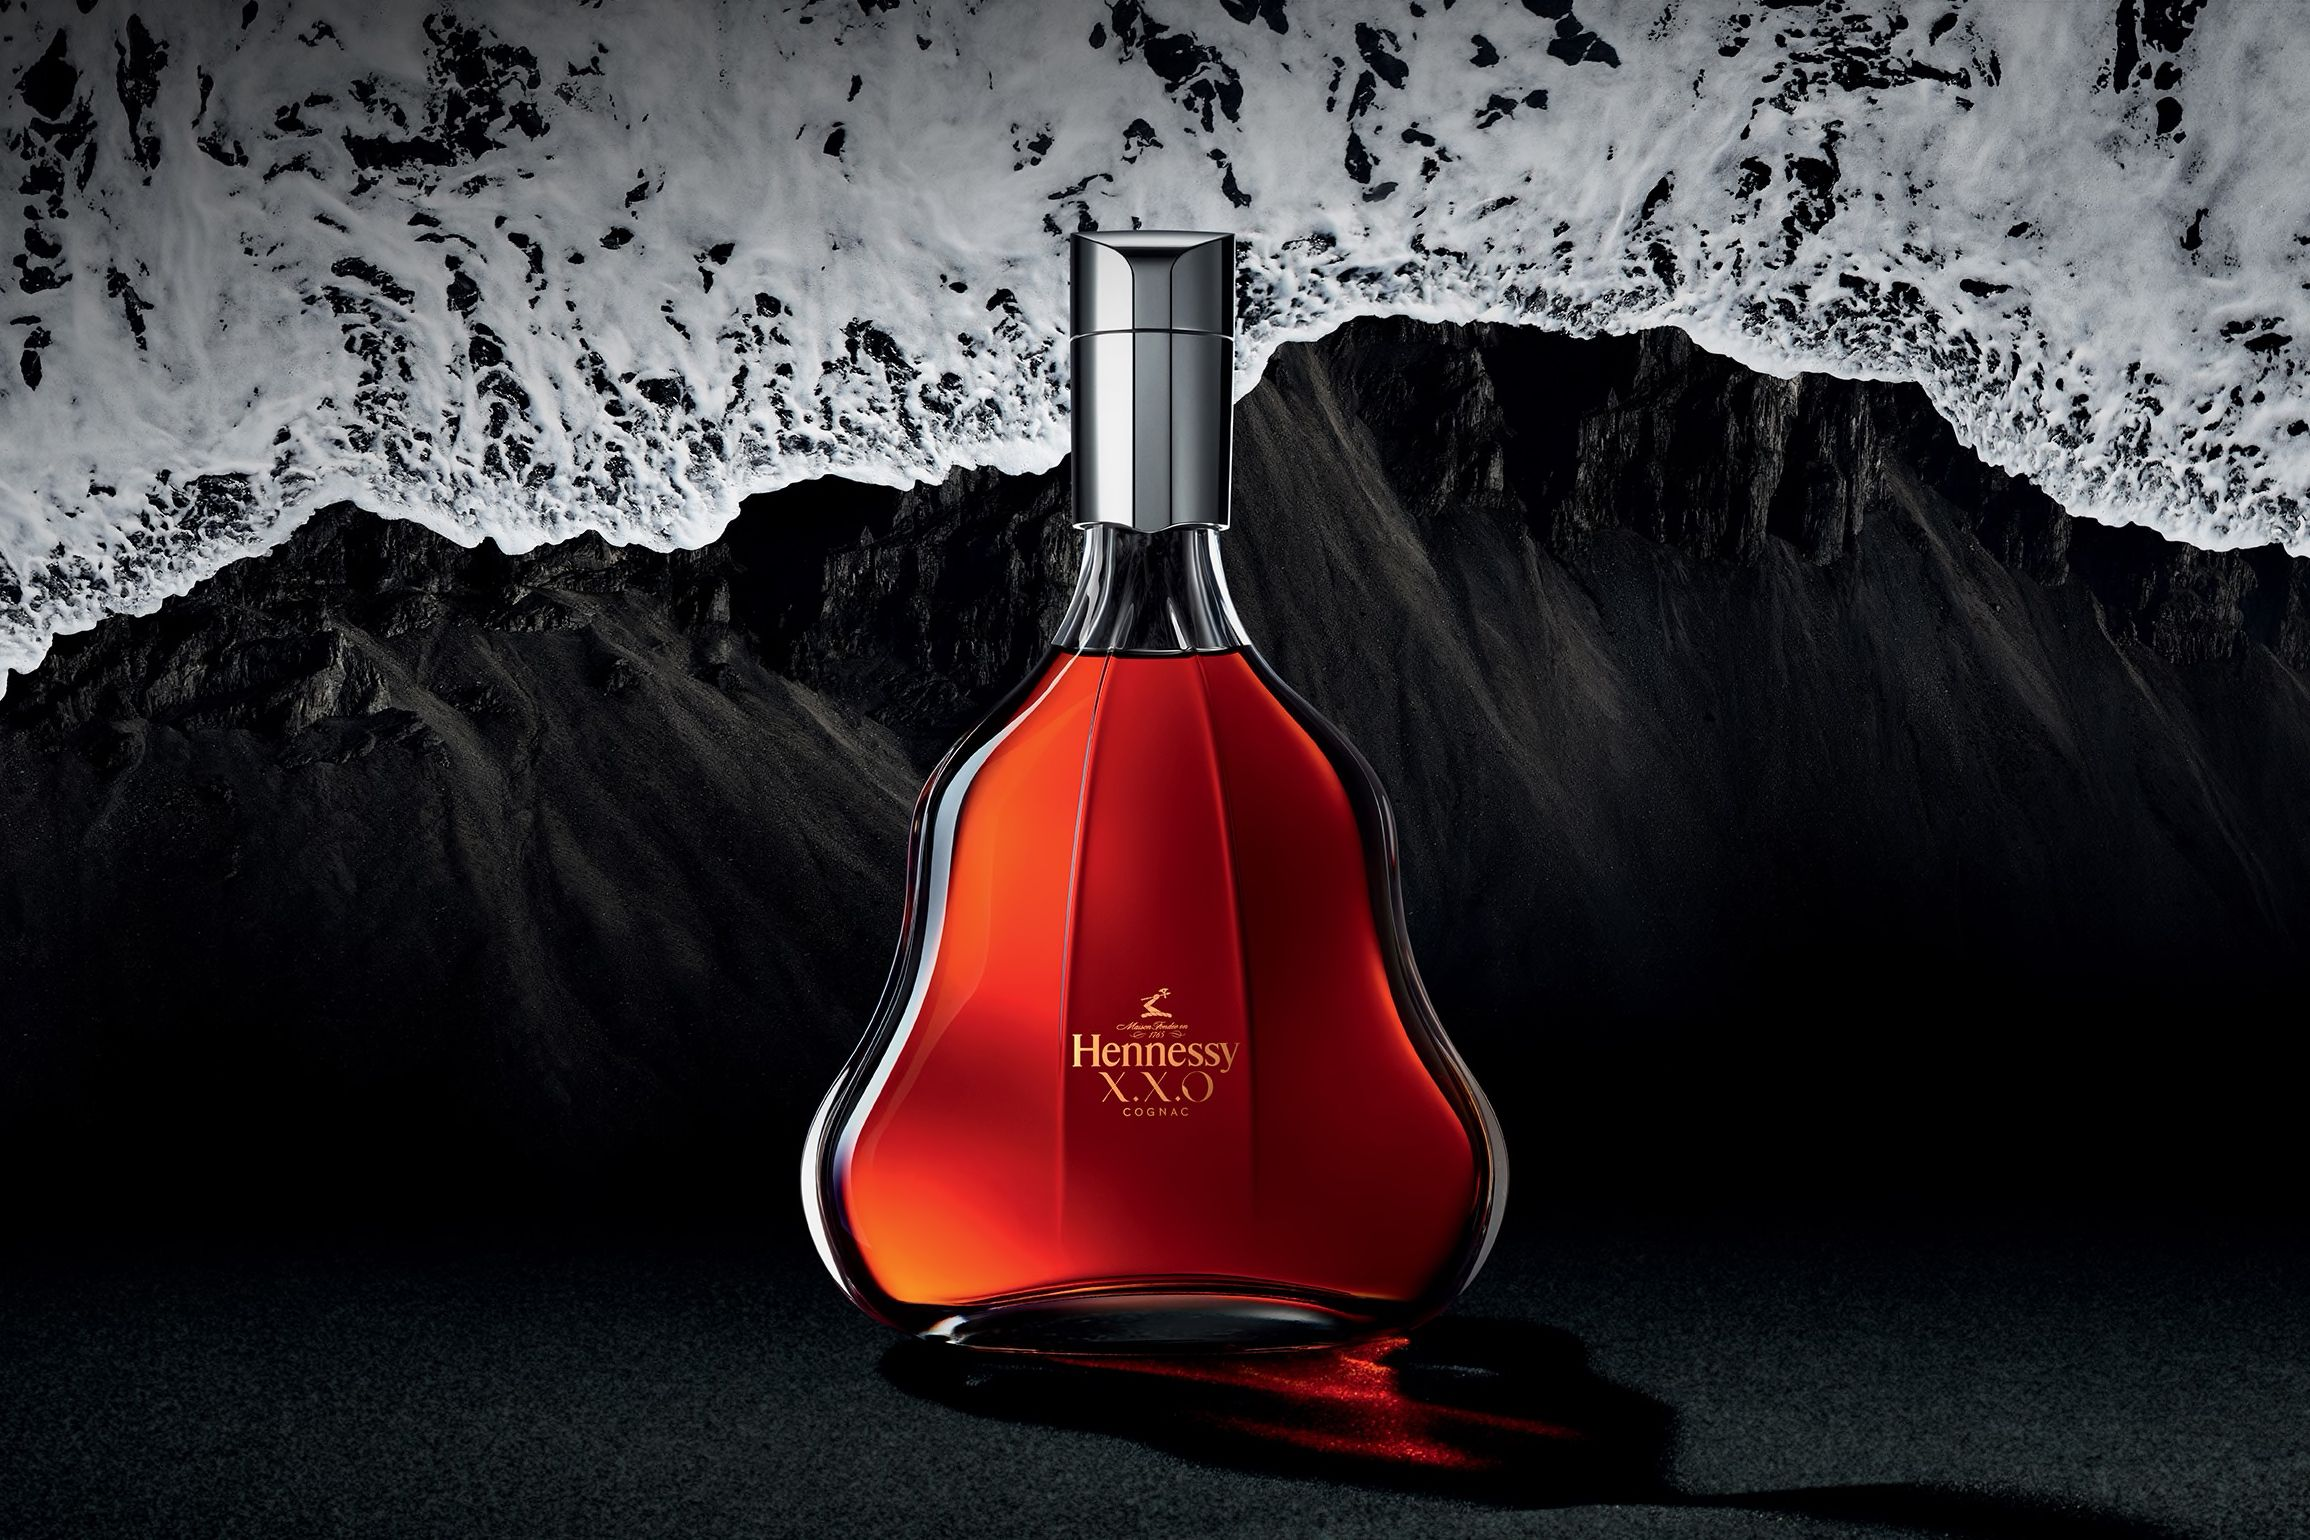 Hennessy XXO logo applied to bottle